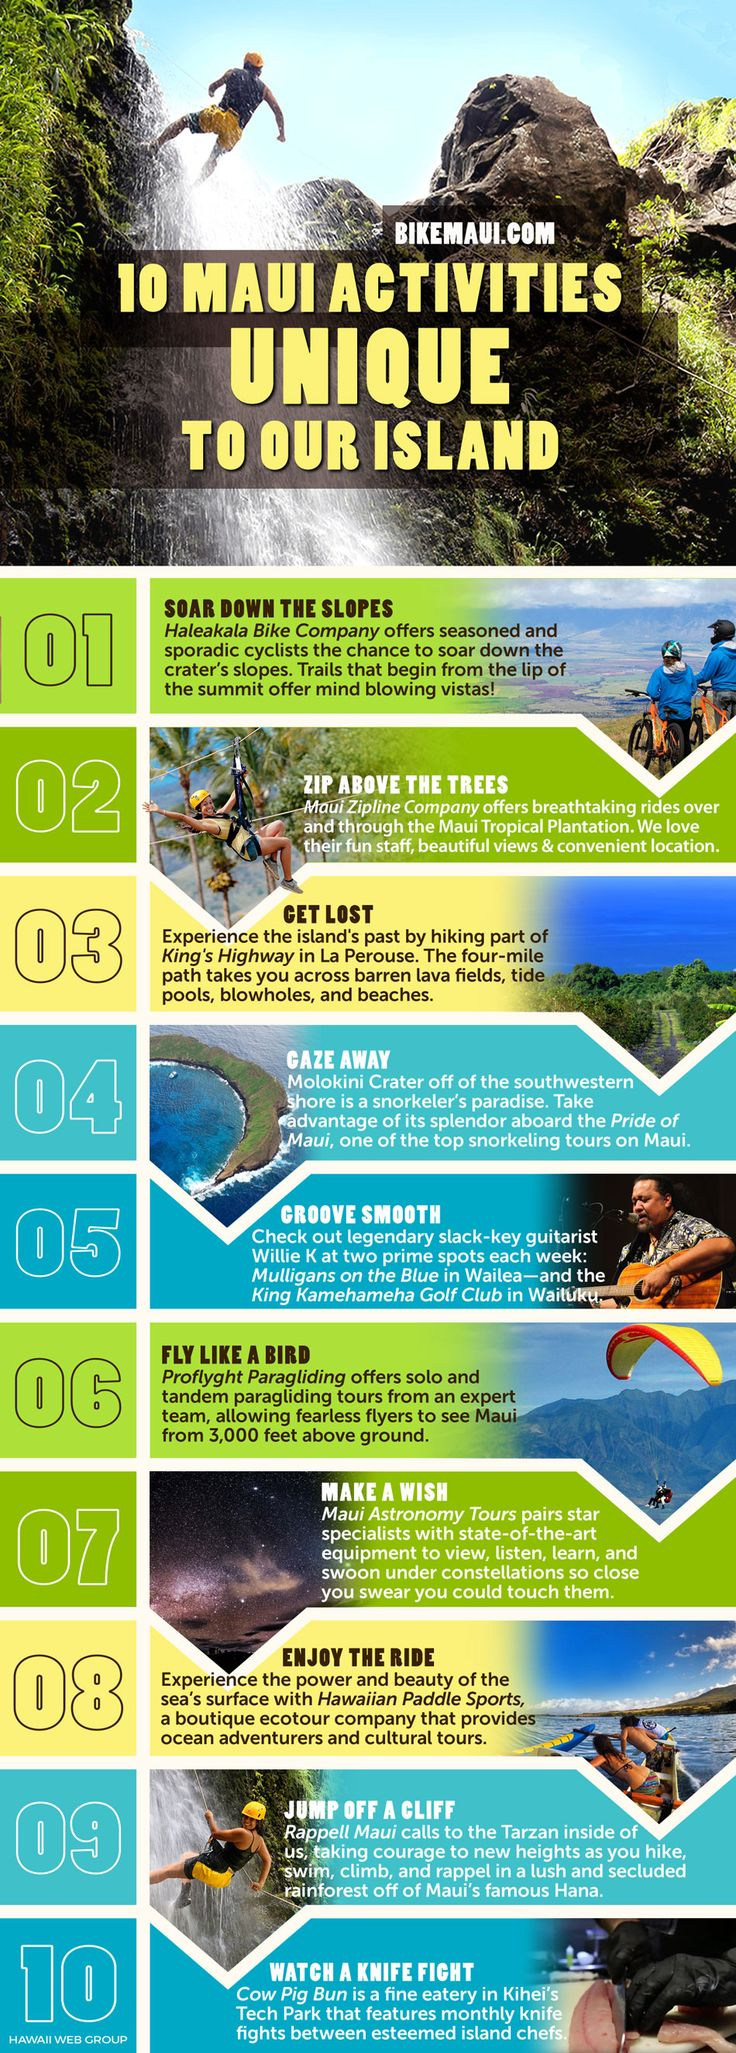 10 Unique Activities in Maui, Hawaii